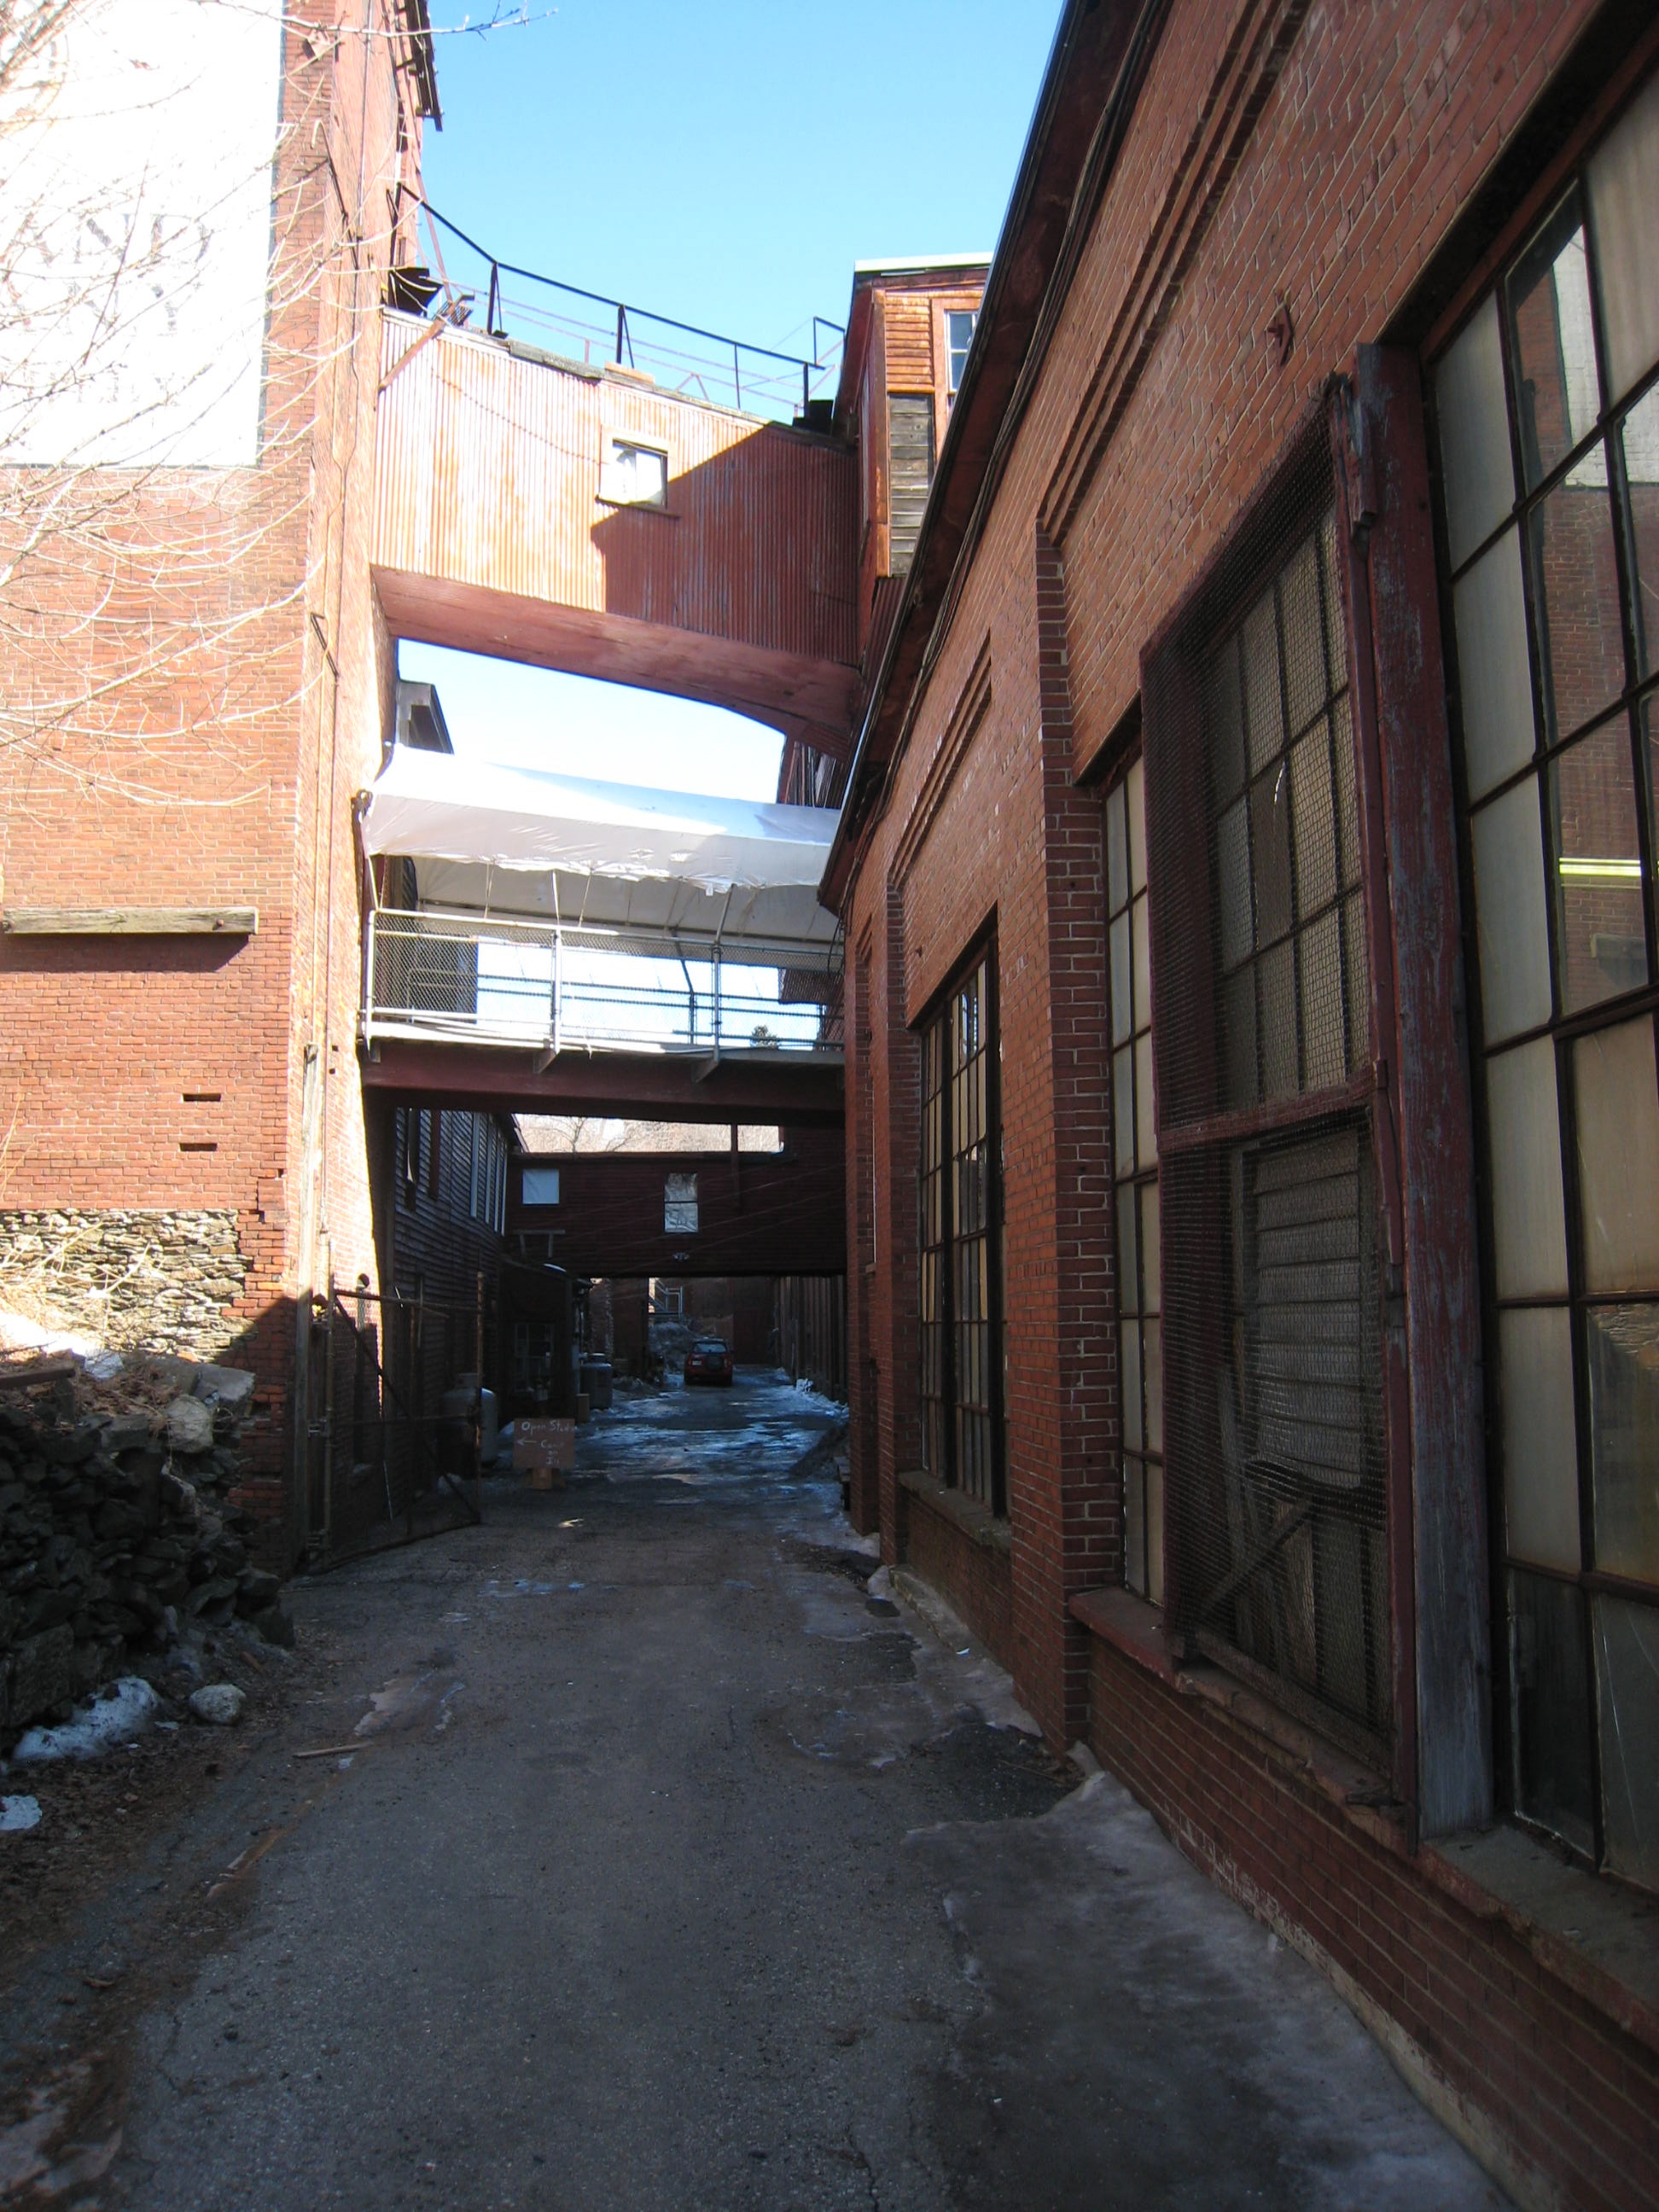 Portland Co - Between Building 1 and 24 - March 2014.JPG